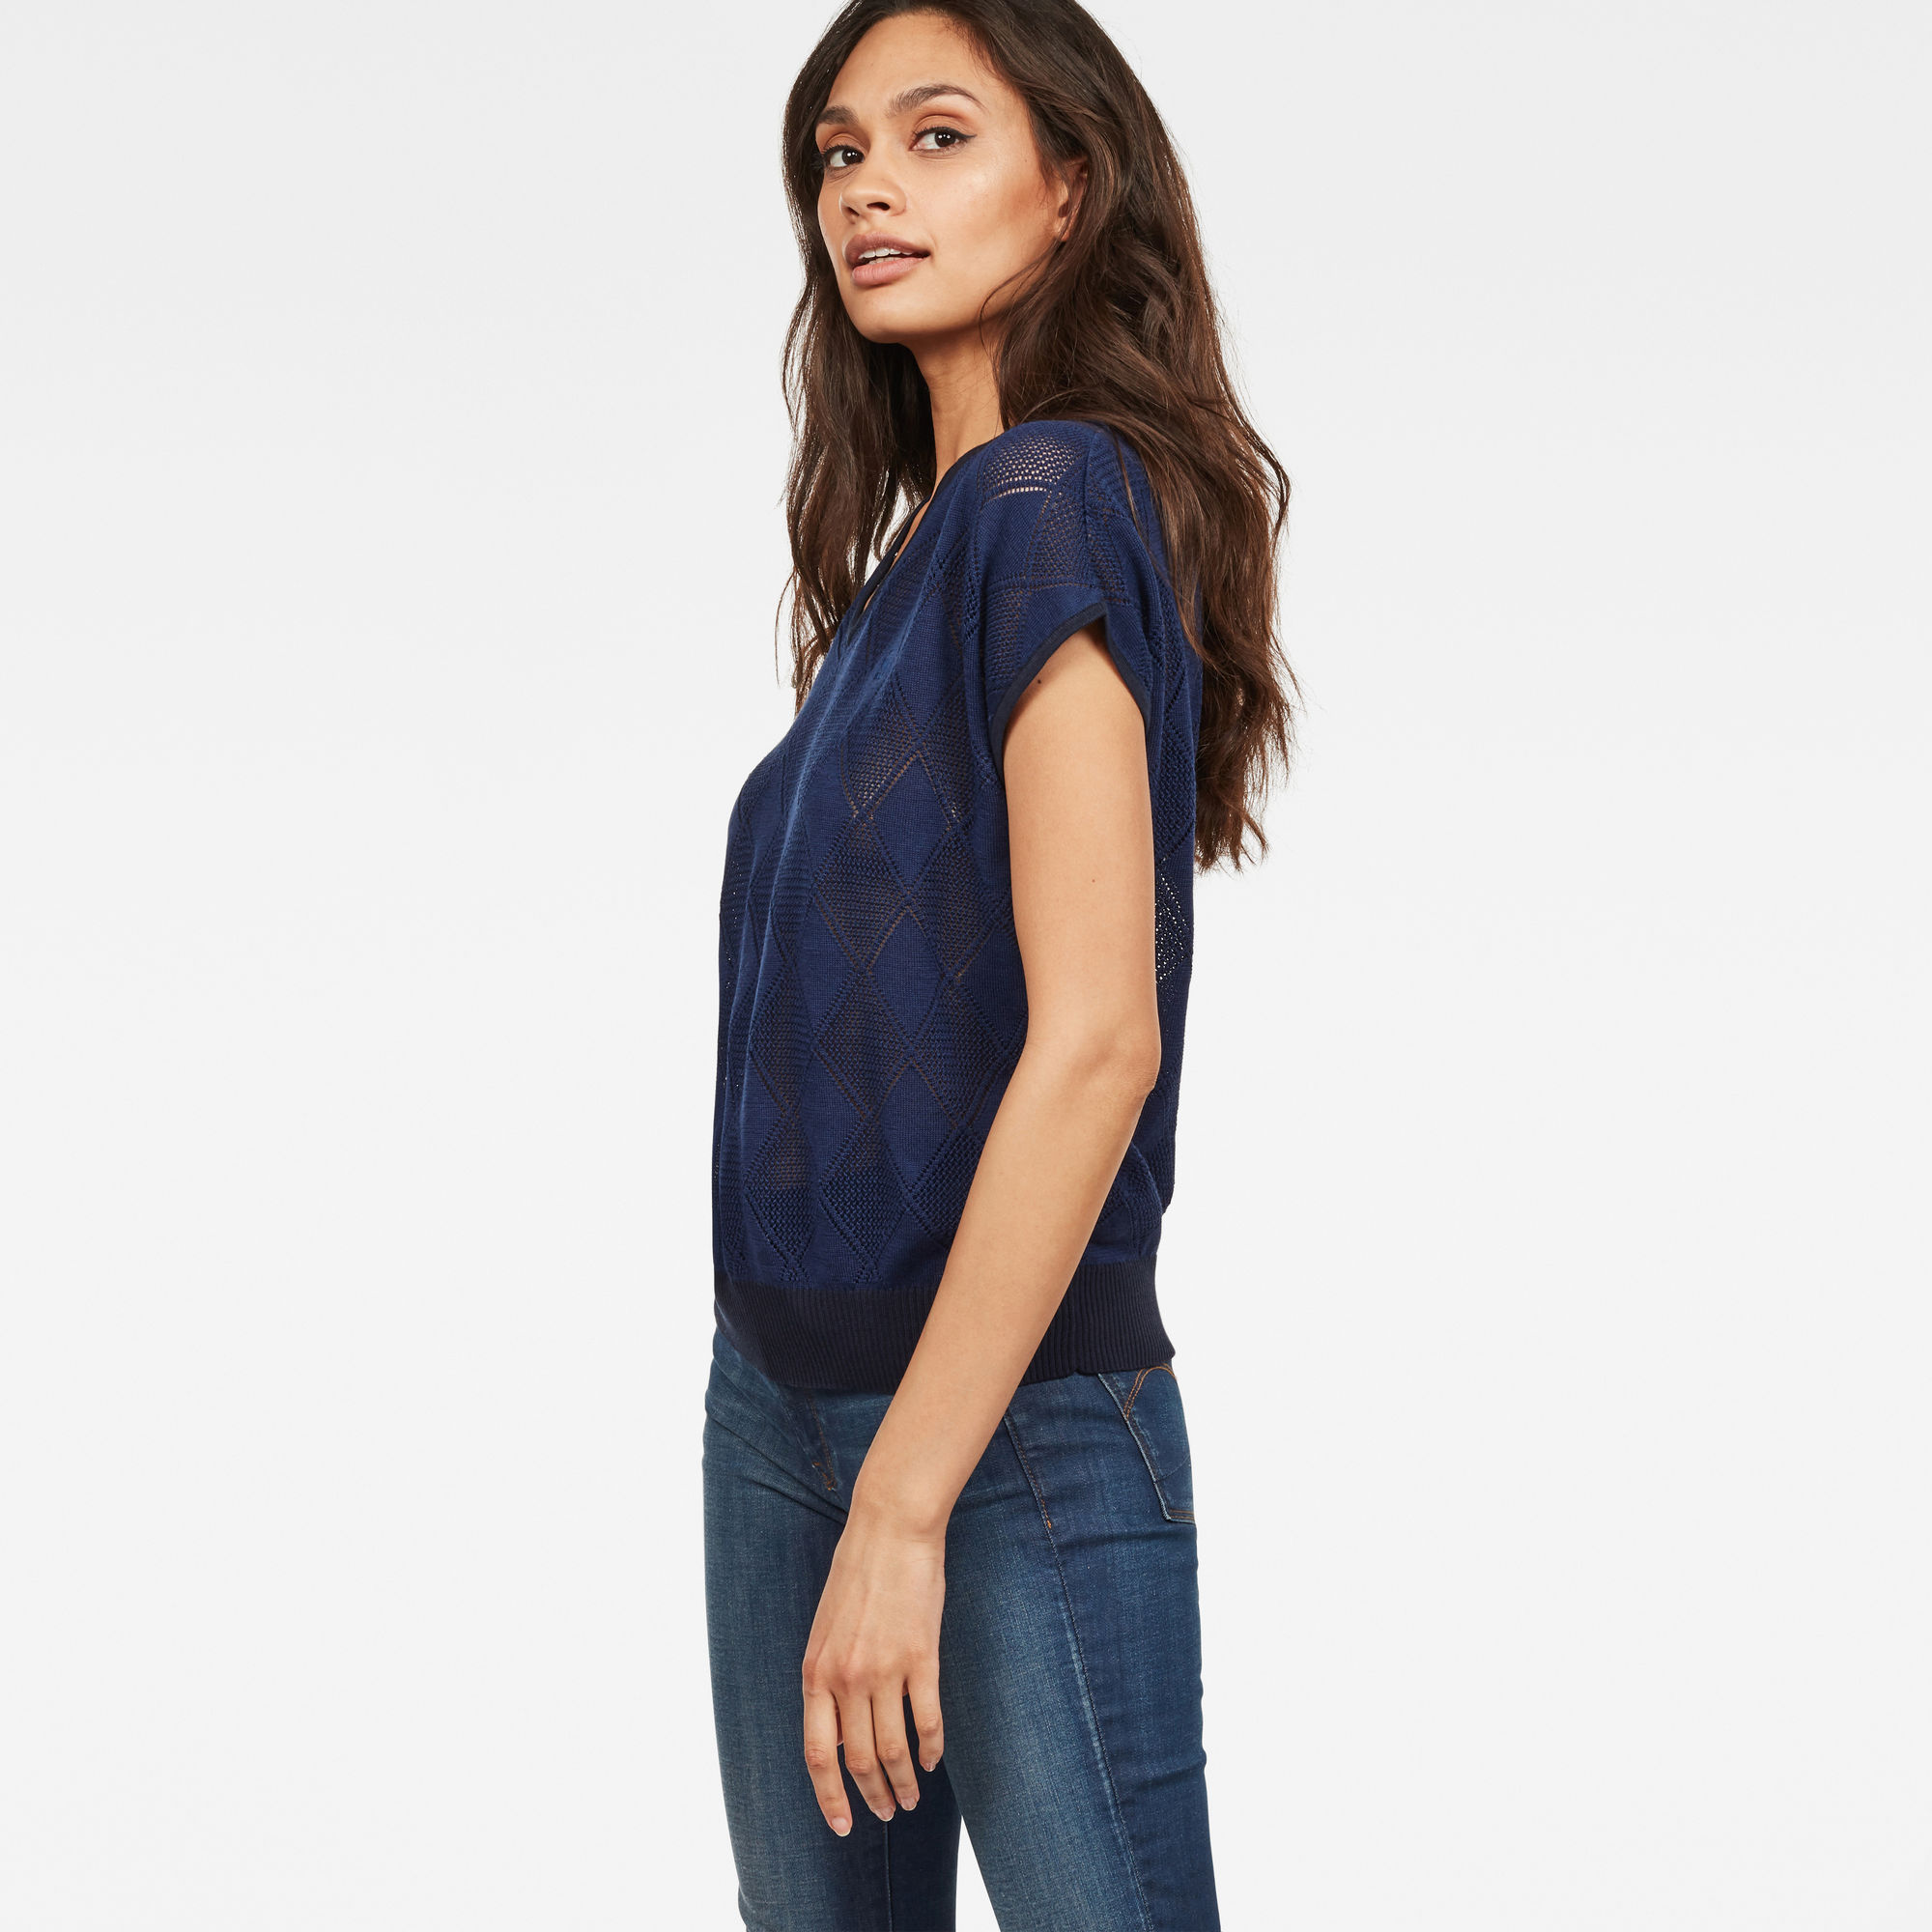 G-Star RAW Pointelle Shirt